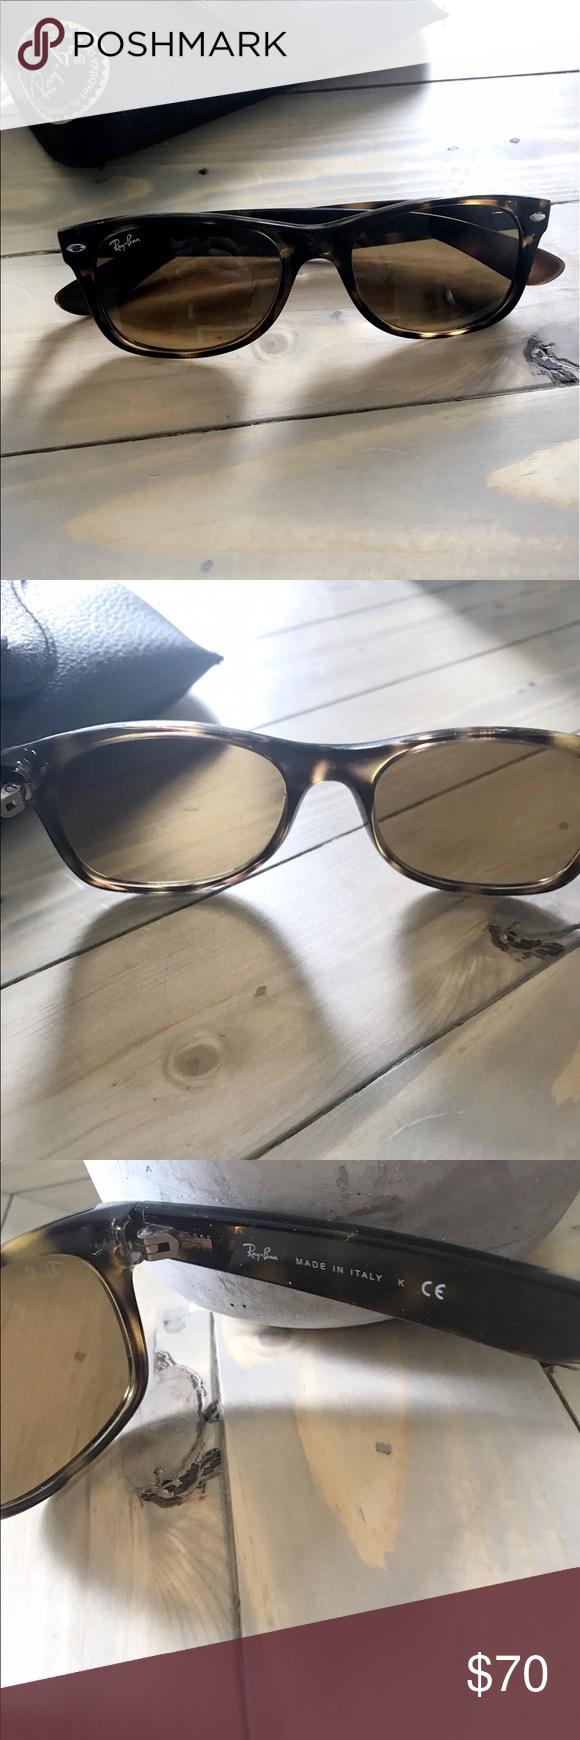 Ray-Ban Tortoise Shell Wayfarers Mint condition! Just maybe a few minor scratches of being picky! These are the tortoise shell wayfarers very popular! Come with case and cleaning cloth, you can see case is ripping slightly but still holds glasses. Ray-Ban Accessories Sunglasses